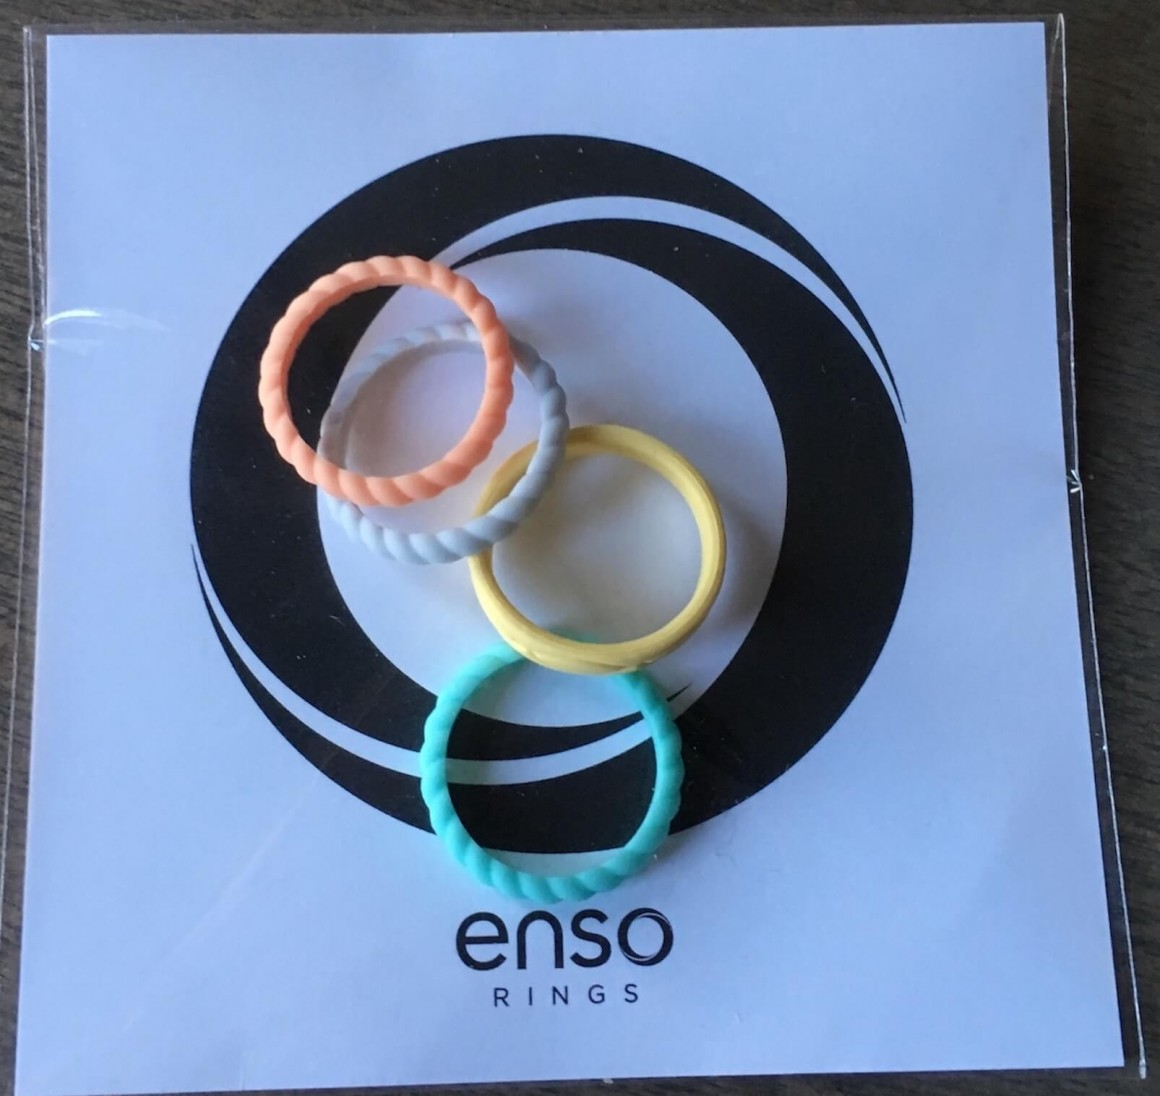 Enso Rings Packaging